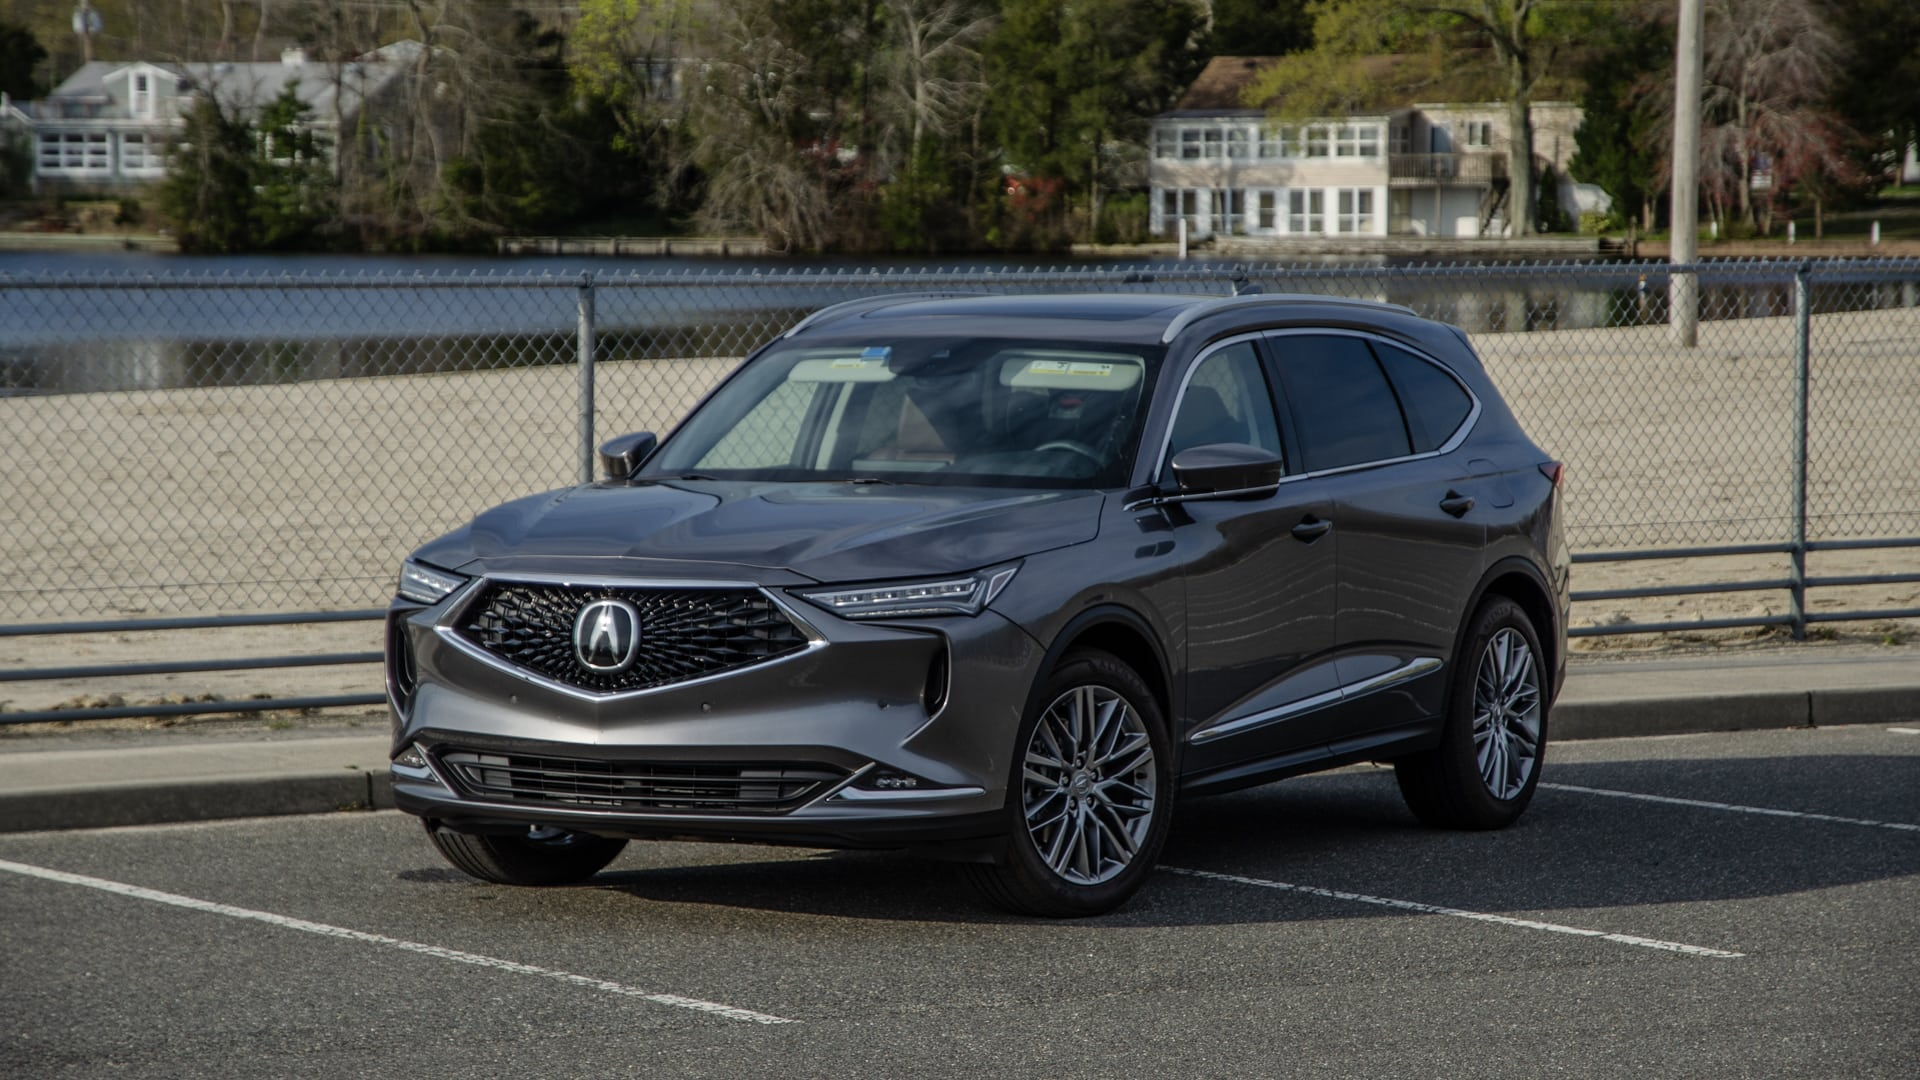 2022 Acura MDX Test Drive 3 of 29